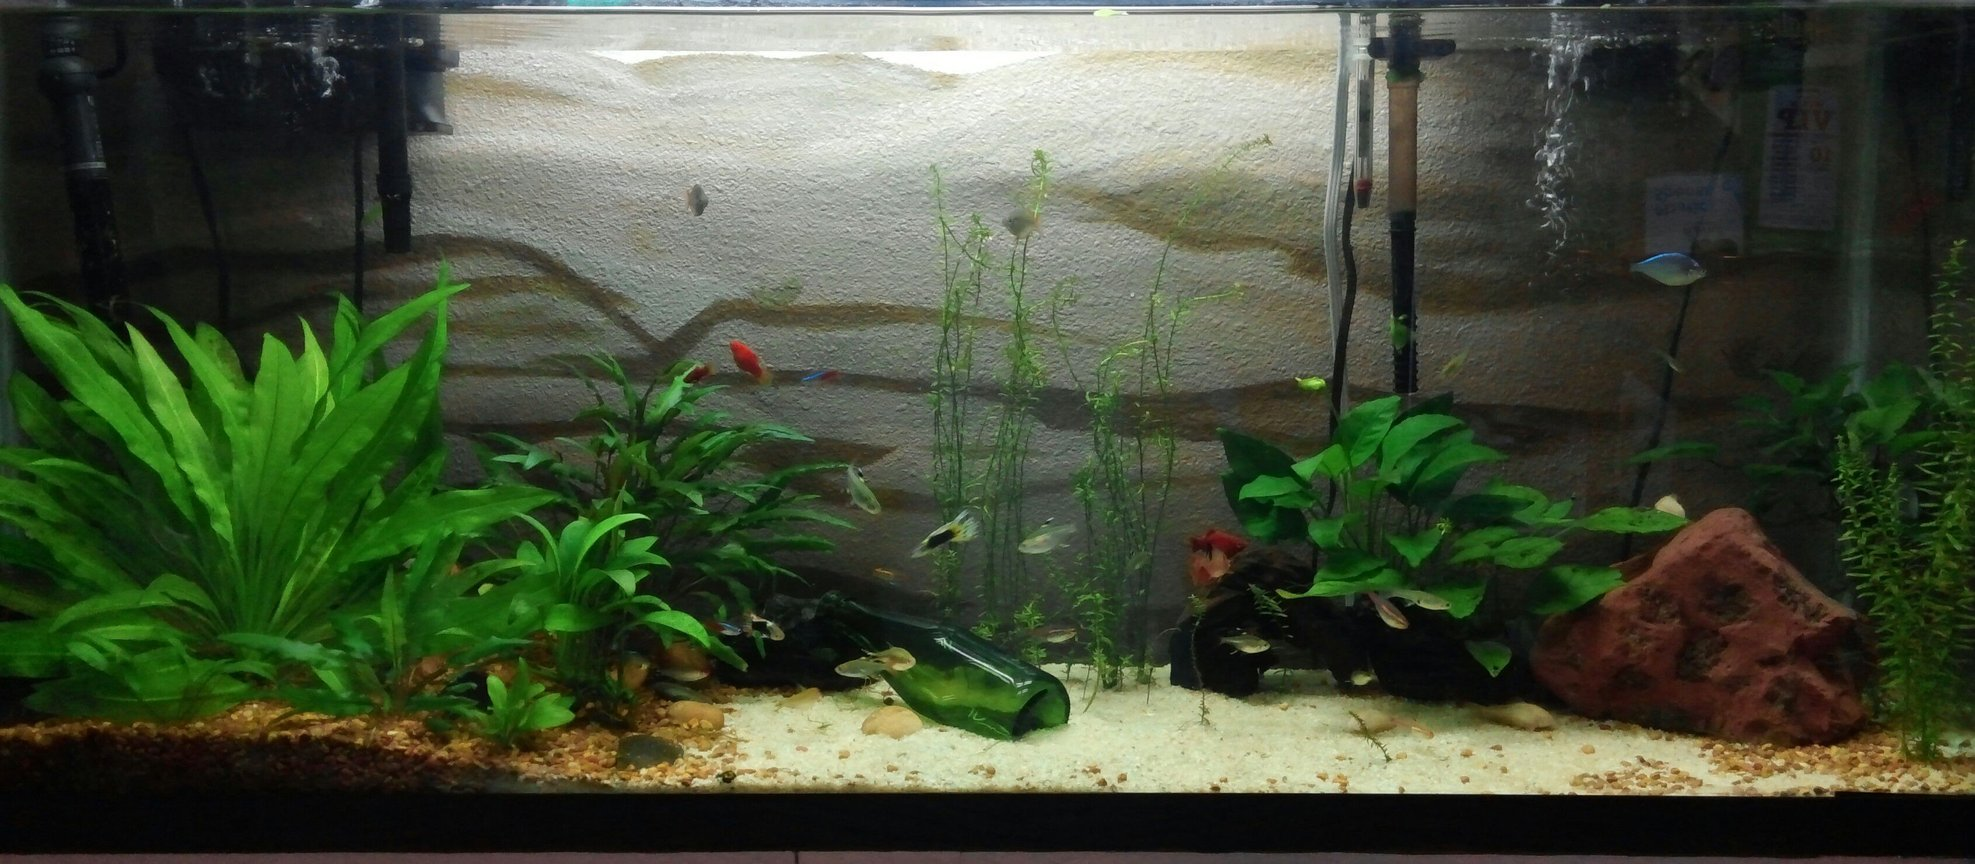 55 gallons planted tank (mostly live plants and fish) - personal aquarium